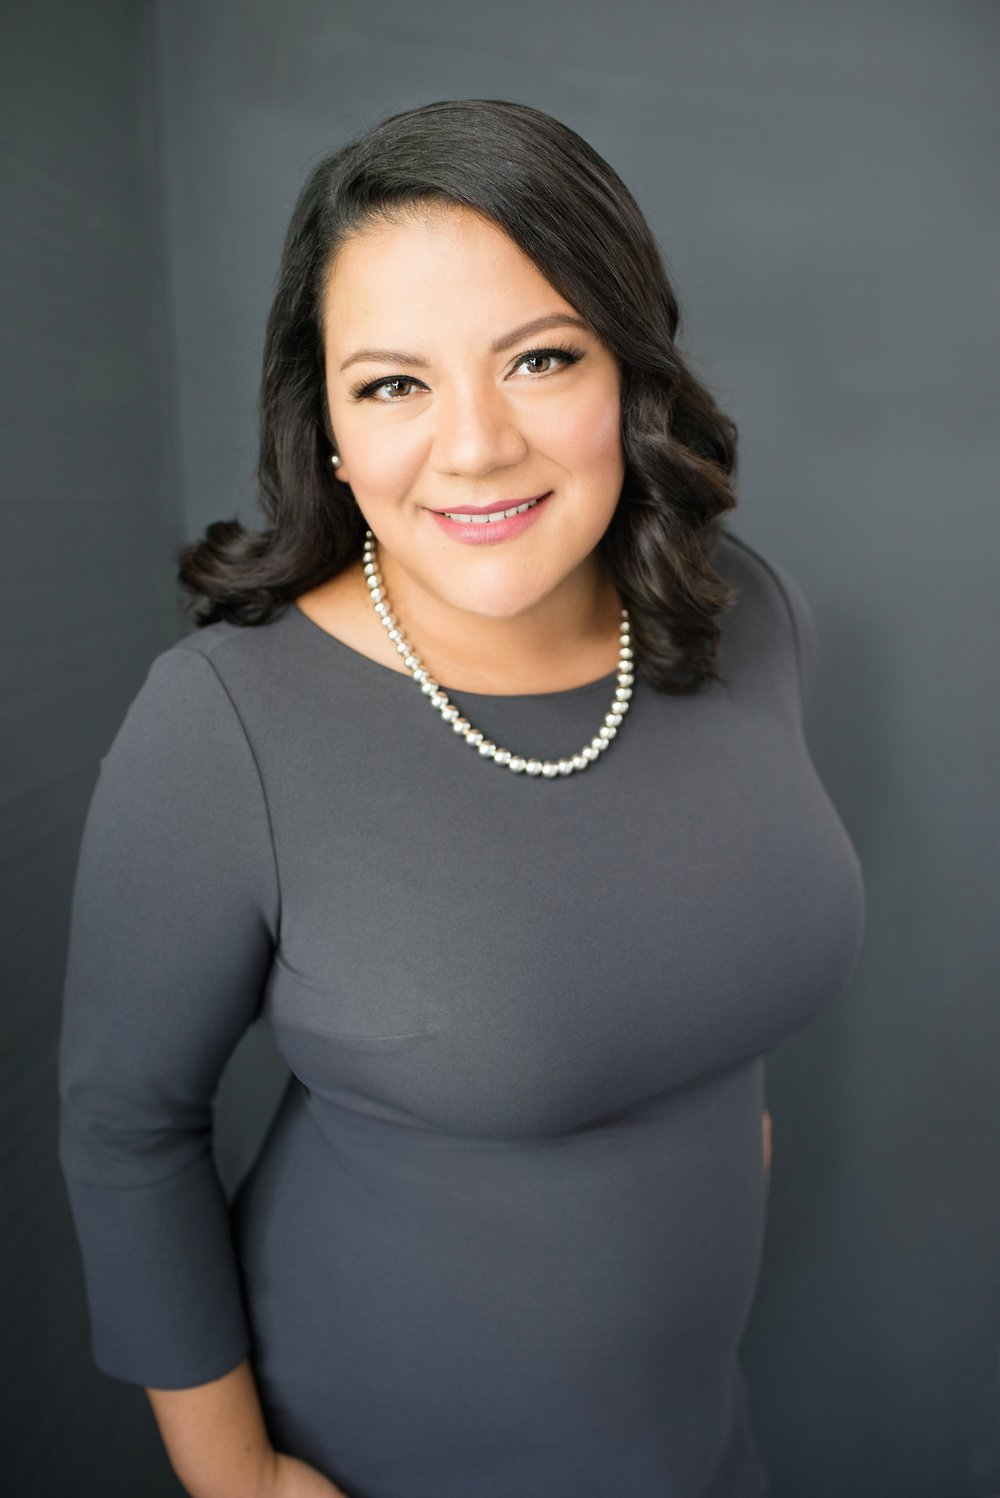 Portraits by Carla Perez from Besame Mucho Photography Inc.